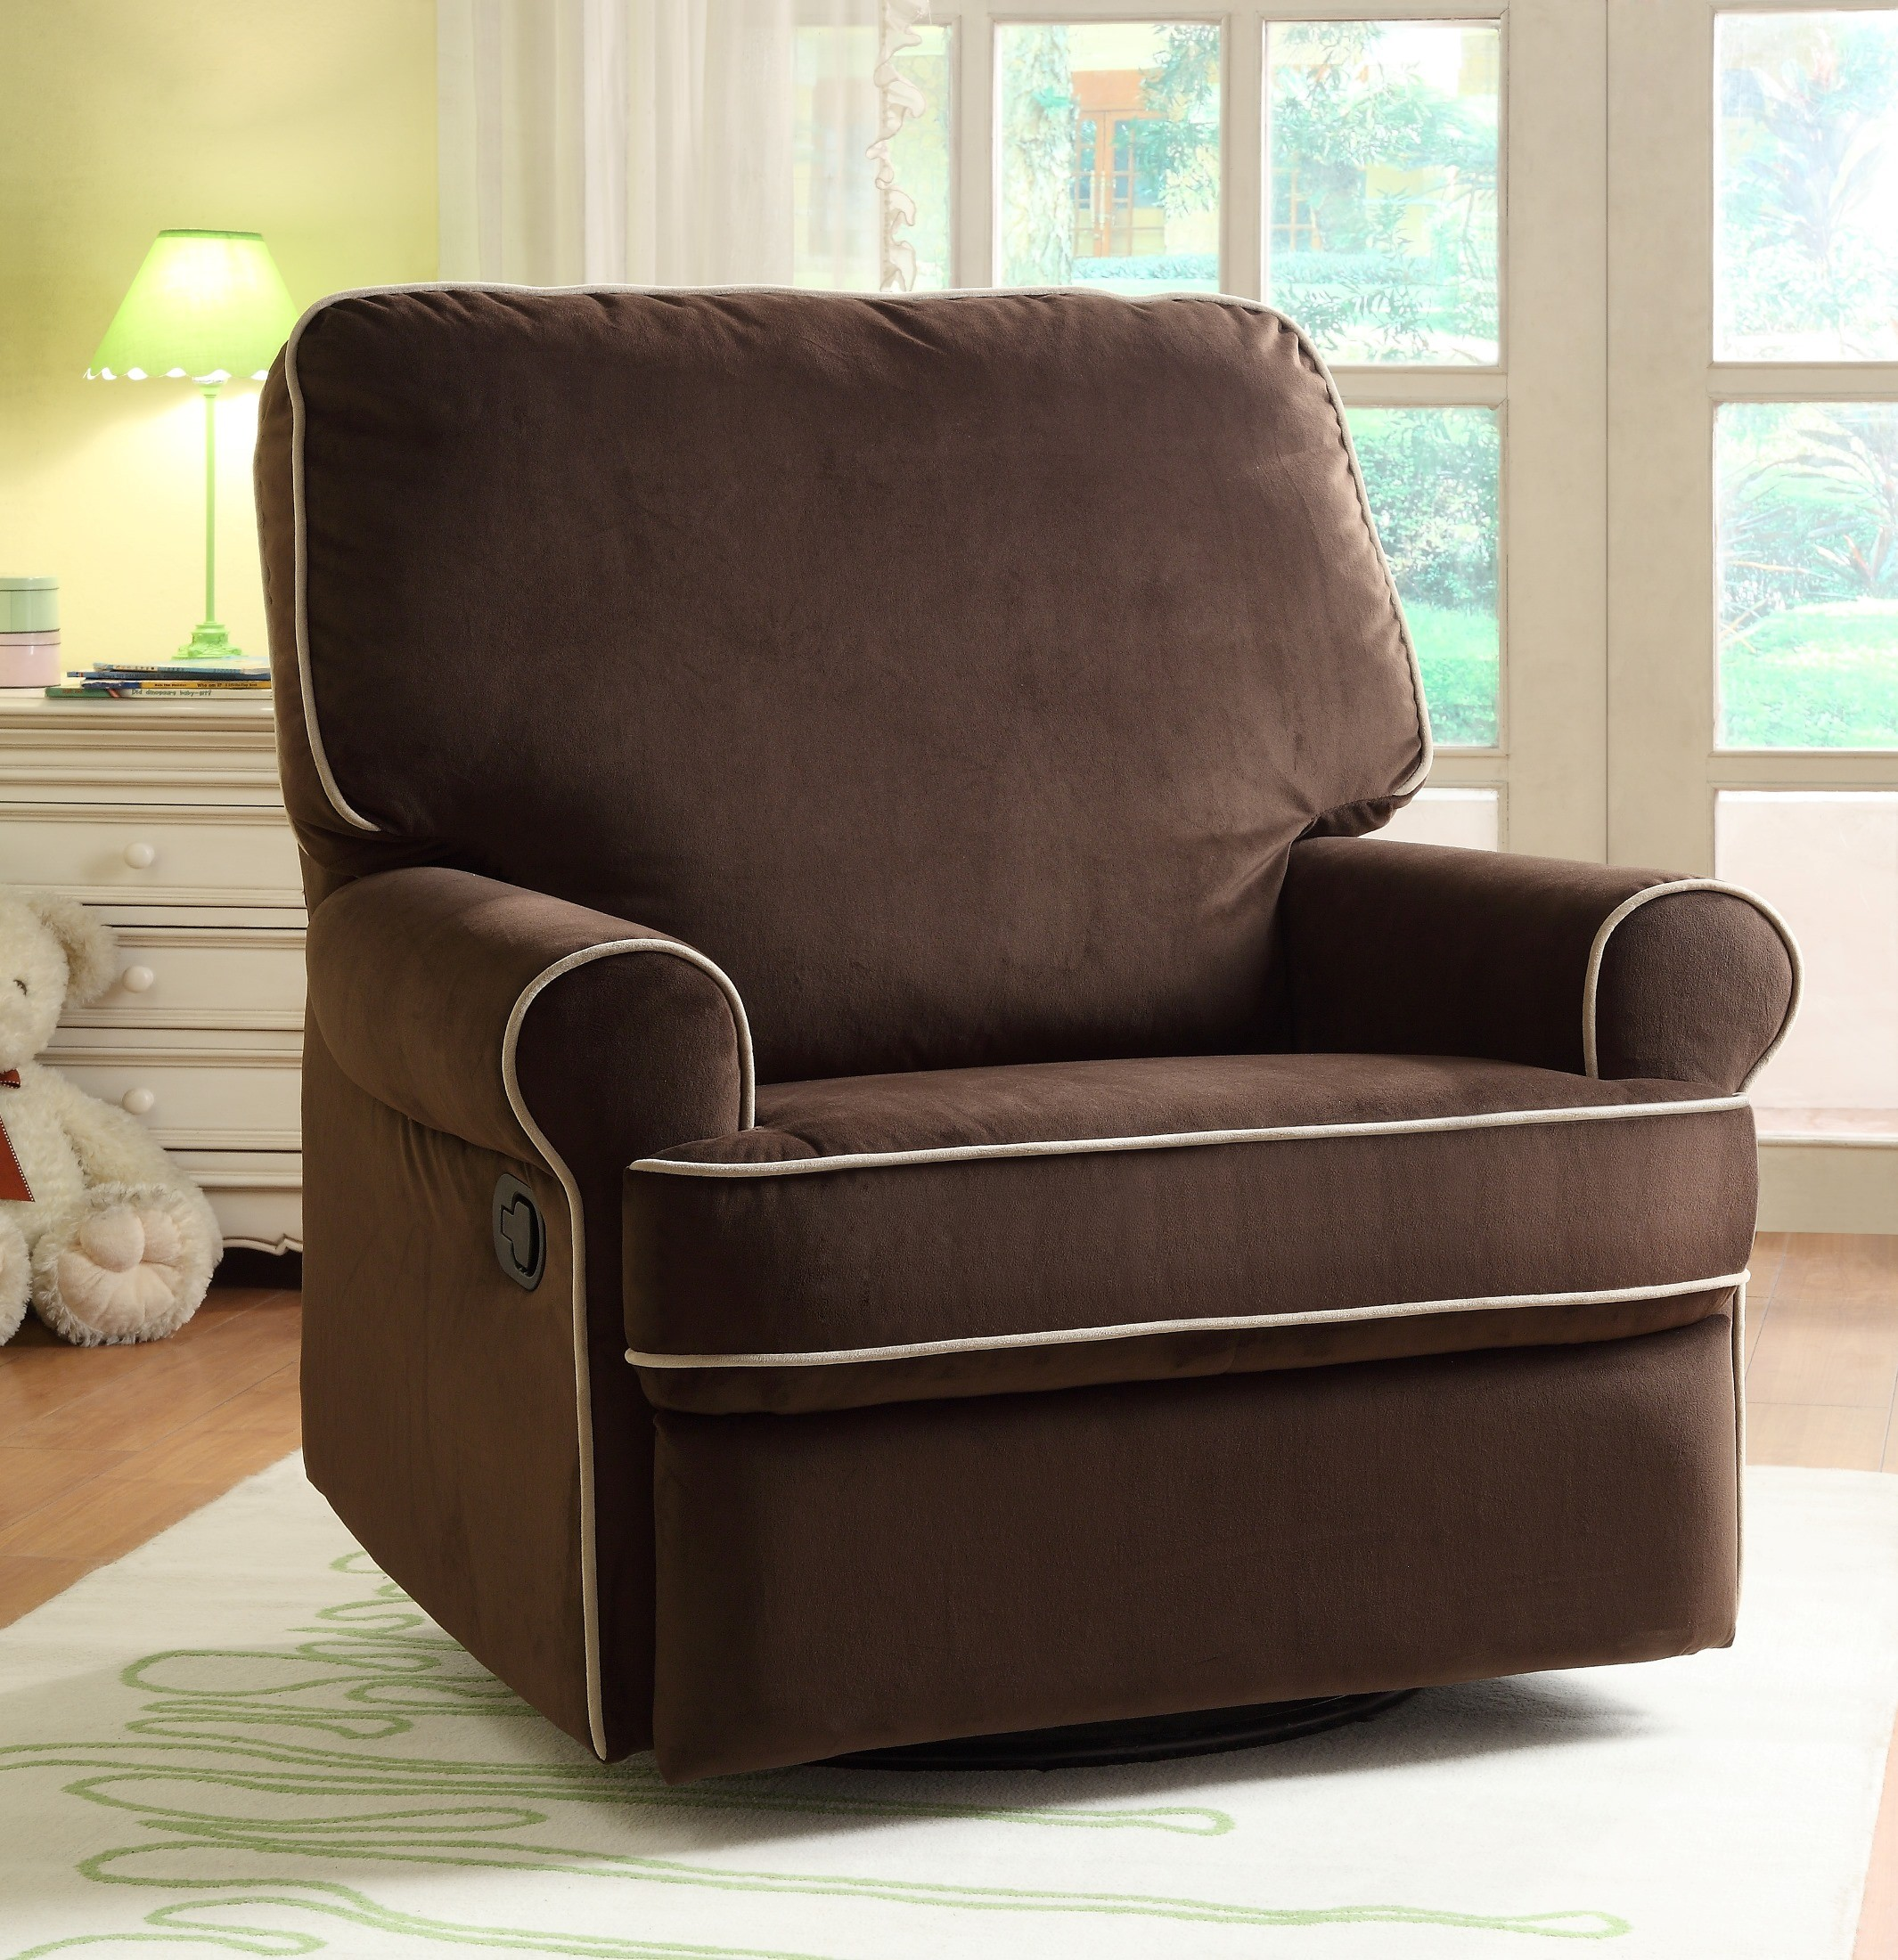 Birch Hill Stella Doe Swivel Glider Recliner From Pulaski